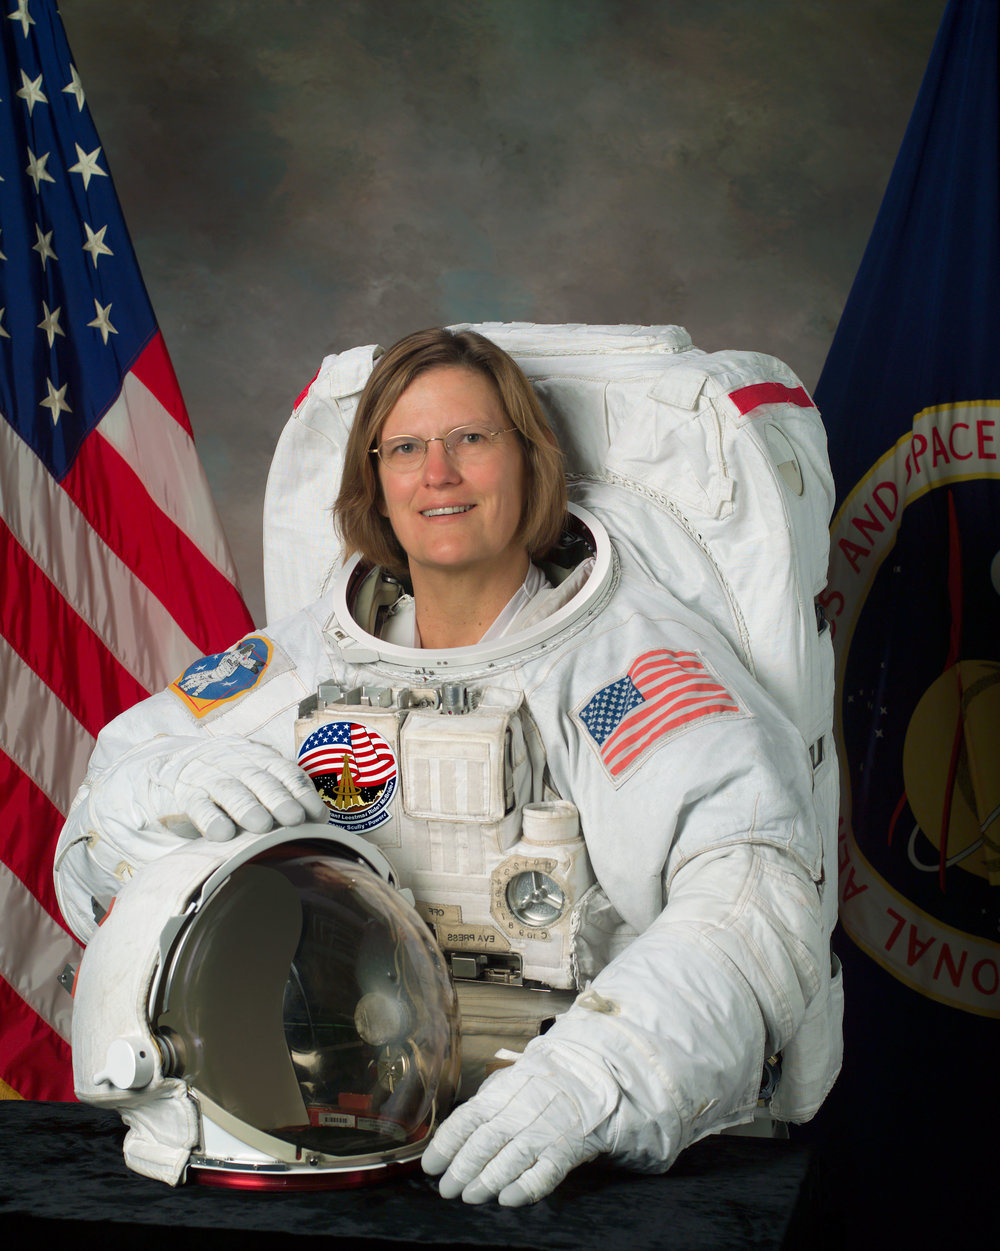 Kathryn Sullivan - First American woman to walk in space